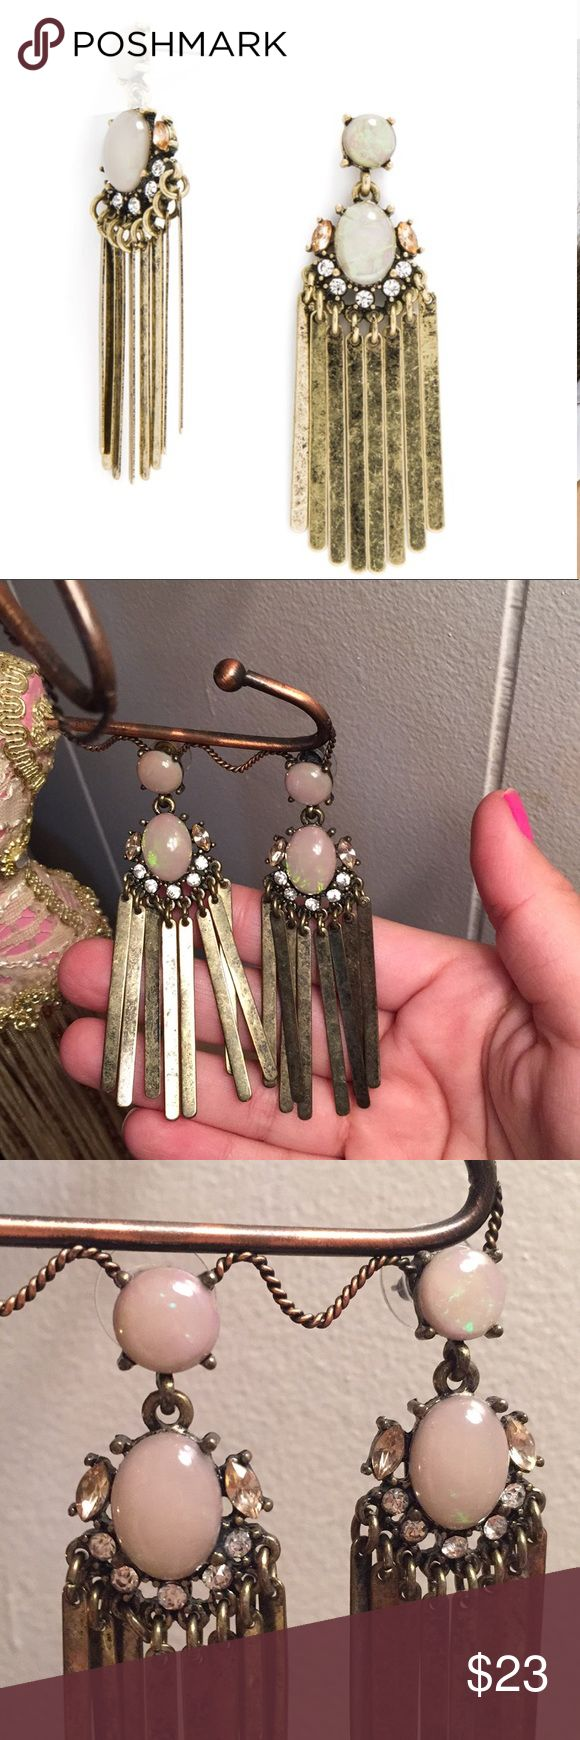 "NWOT Opal titan fringe drop earrings by baublebar NWOT, Opal, dangling, fringe, antique, brass color, stud dangles, sparkly and super cute!!  Measurements Length: 3""; width: 0.8""; weight: 0.3 oz. lightweight baublebar Jewelry Earrings"